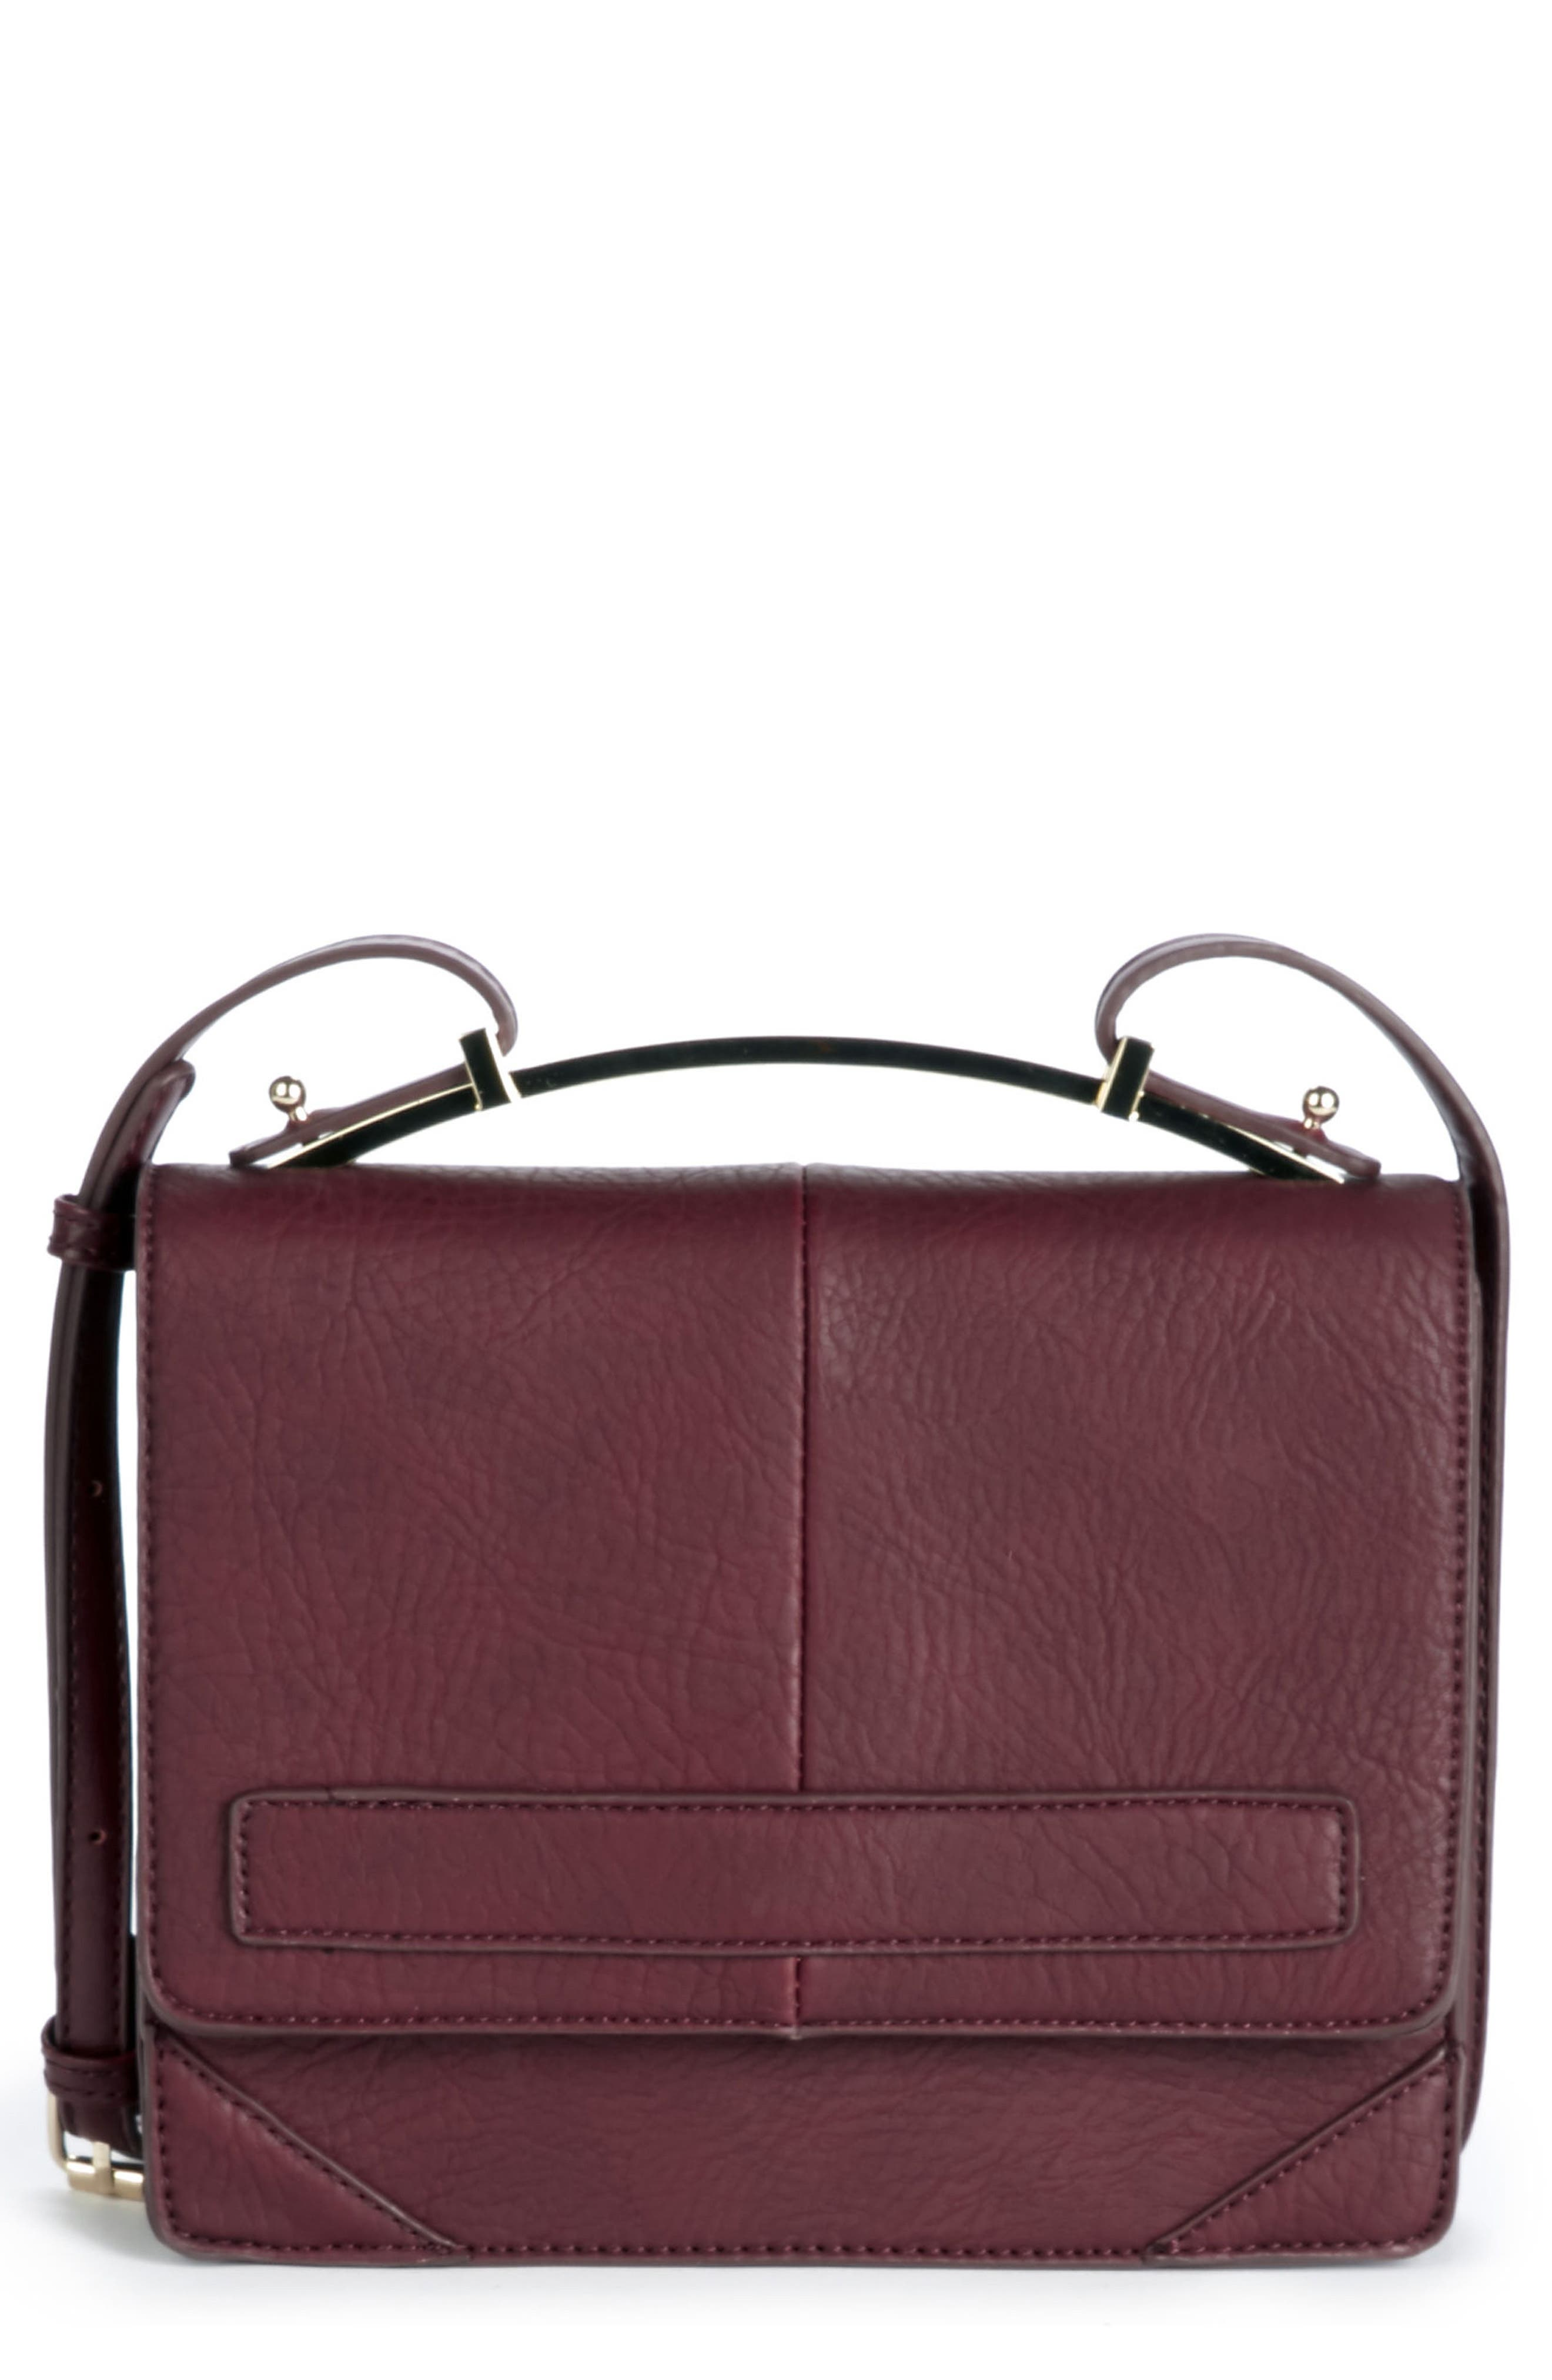 Krista Faux Leather Crossbody Bag,                             Main thumbnail 2, color,